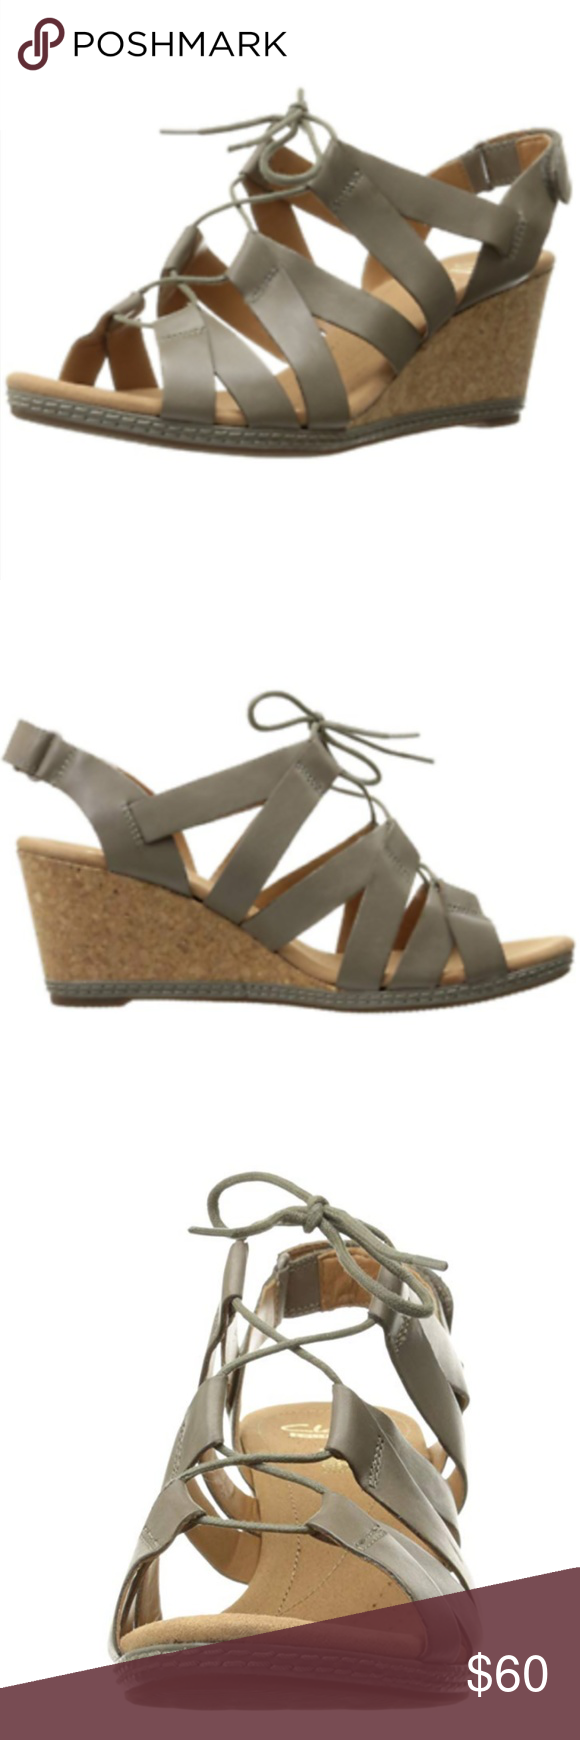 8617a254a677 NWOT Clarks Helio Mindin Wedge Sandals Lace Up Clarks Women s Helio Mindin  Wedge Sandal